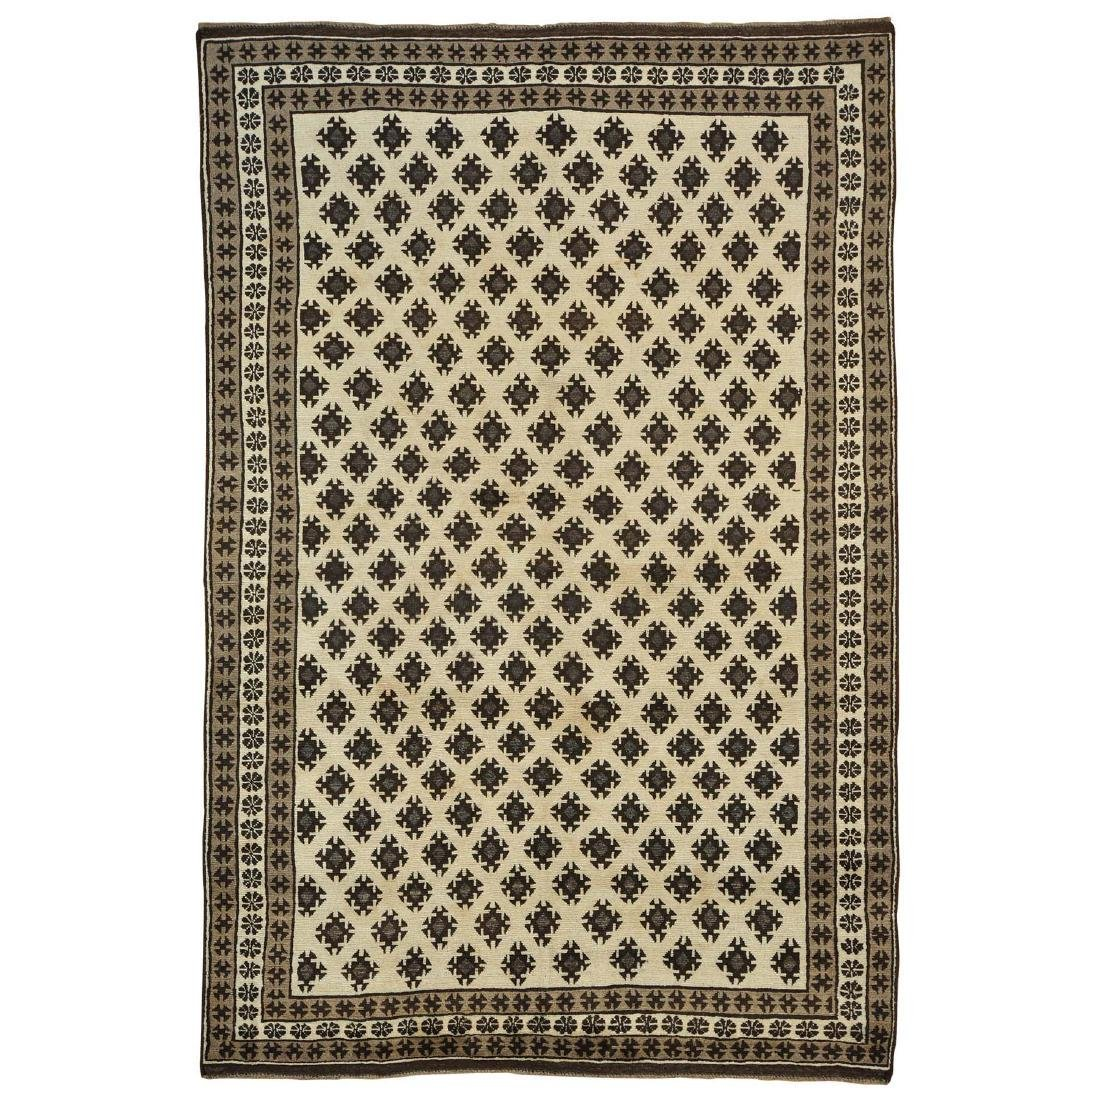 Ivory Undyed Natural Baluch Rug Hand Knotted 6.8x10.1